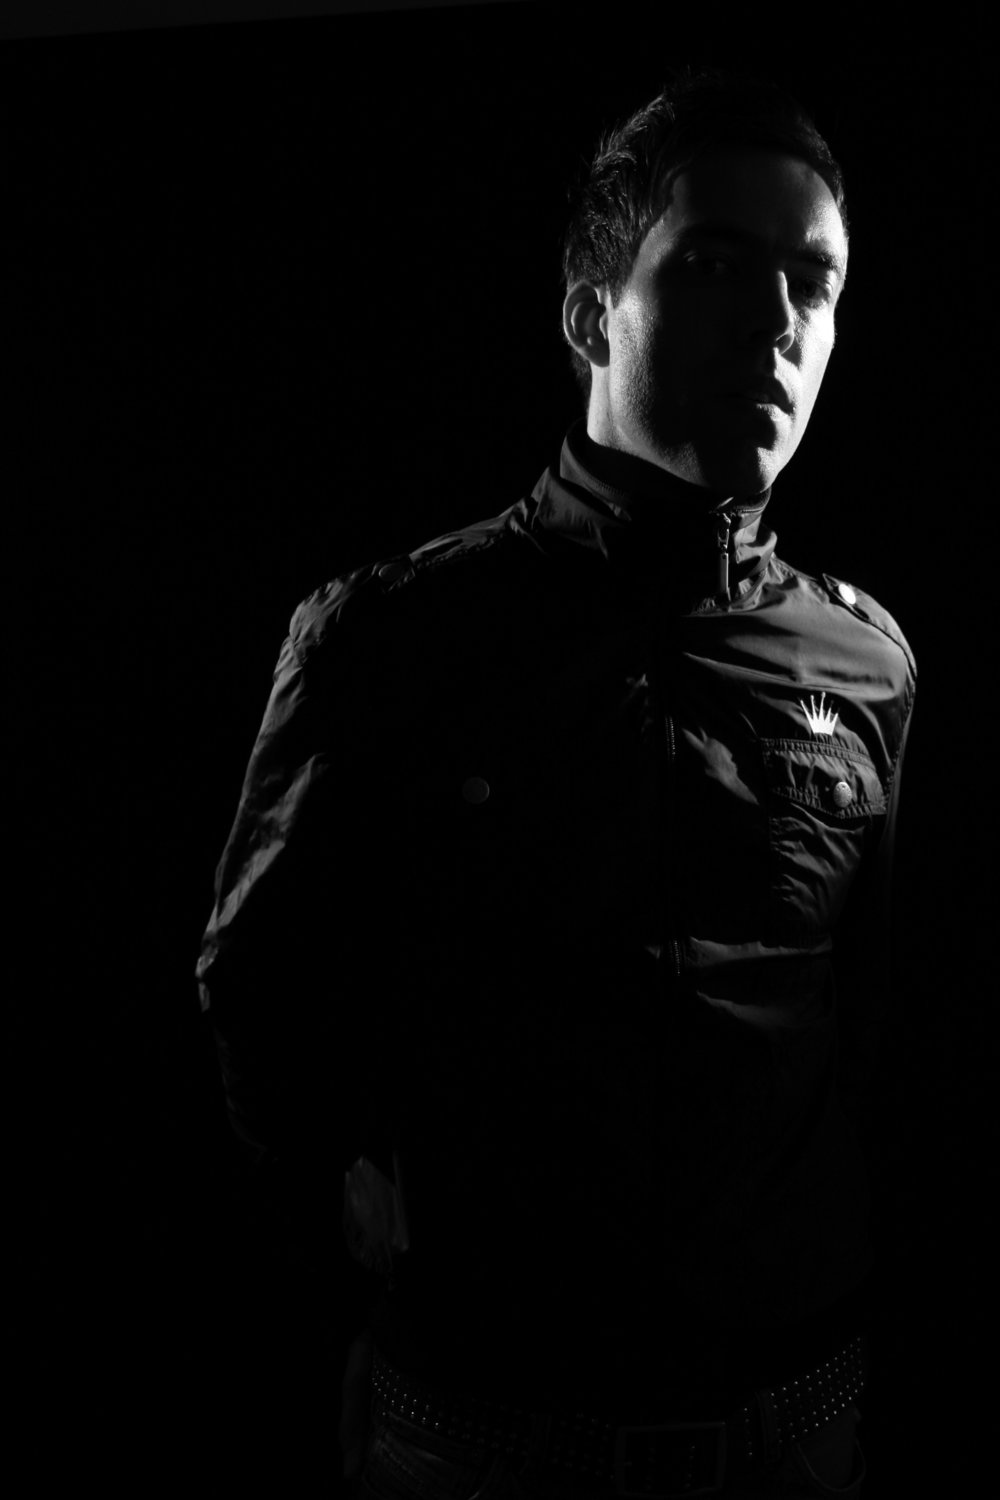 MELNYK - Contrasting landscapes of rocky mountains and the gritty basements of London nightclubs. Warm synths, heavy bass, house kicks. Playing records to fashionistas while producing for Pet Shop Boys, Louie Austen and Temposhark. Melnyk's debut album Silence was a reviewers favourite, earning album of the month in DJ Magazine and topping the iTunes electronic music chart. Recorded on only three synthesizers the album's minimal composition was written to be performed live. The single